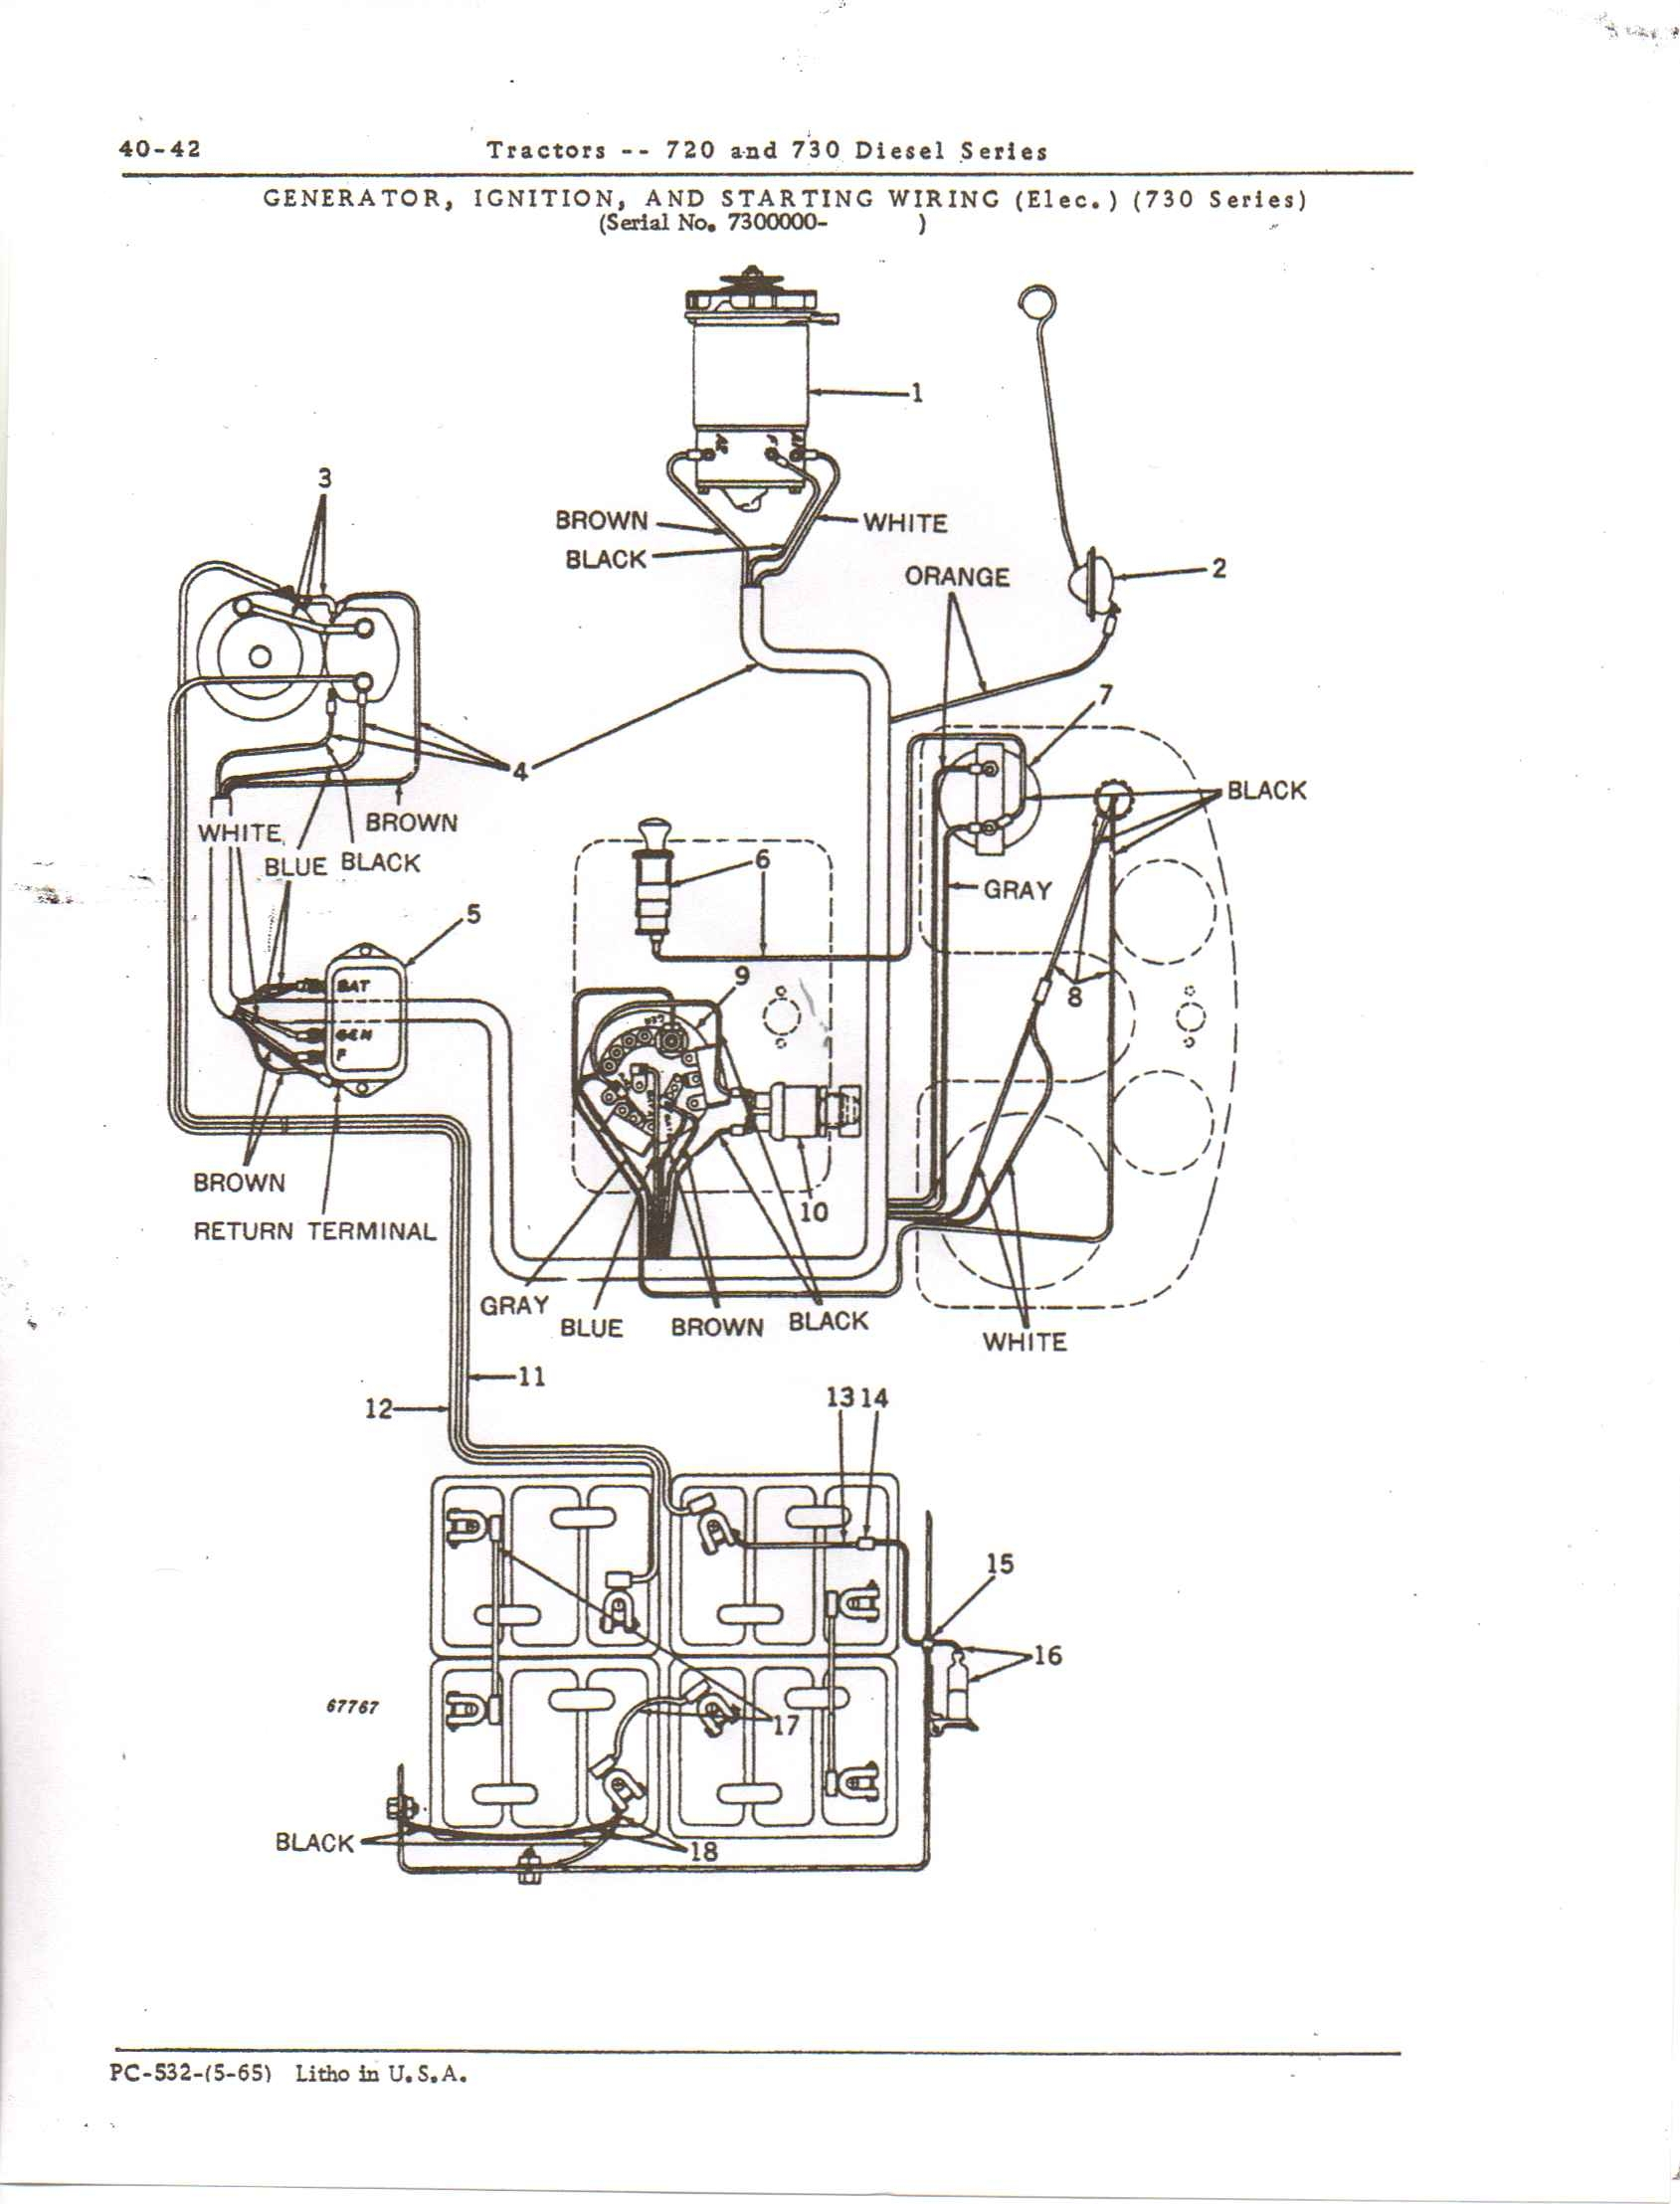 "Lt150 Wiring Diagram | Wiring Diagram on john deere 3010 wiring-diagram, john deere 345 fuel pump replacement, john deere 165 wiring-diagram, john deere 112 parts diagram, john deere model b engine diagram, john deere 212 diagram, john deere 110 riding mower, john deere 112 wiring-diagram, john deere 111 wiring-diagram, john deere 155c wiring-diagram, john deere 42"" deck parts, john deere 2040 wiring-diagram, john deere 112 garden tractor manual, john deere 5103 wiring-diagram, john deere 145 wiring-diagram, john deere 130 wiring-diagram, john deere ignition switch diagram, john deere riding mower diagram, john deere 317 ignition diagram, john deere 332 ignition switch,"